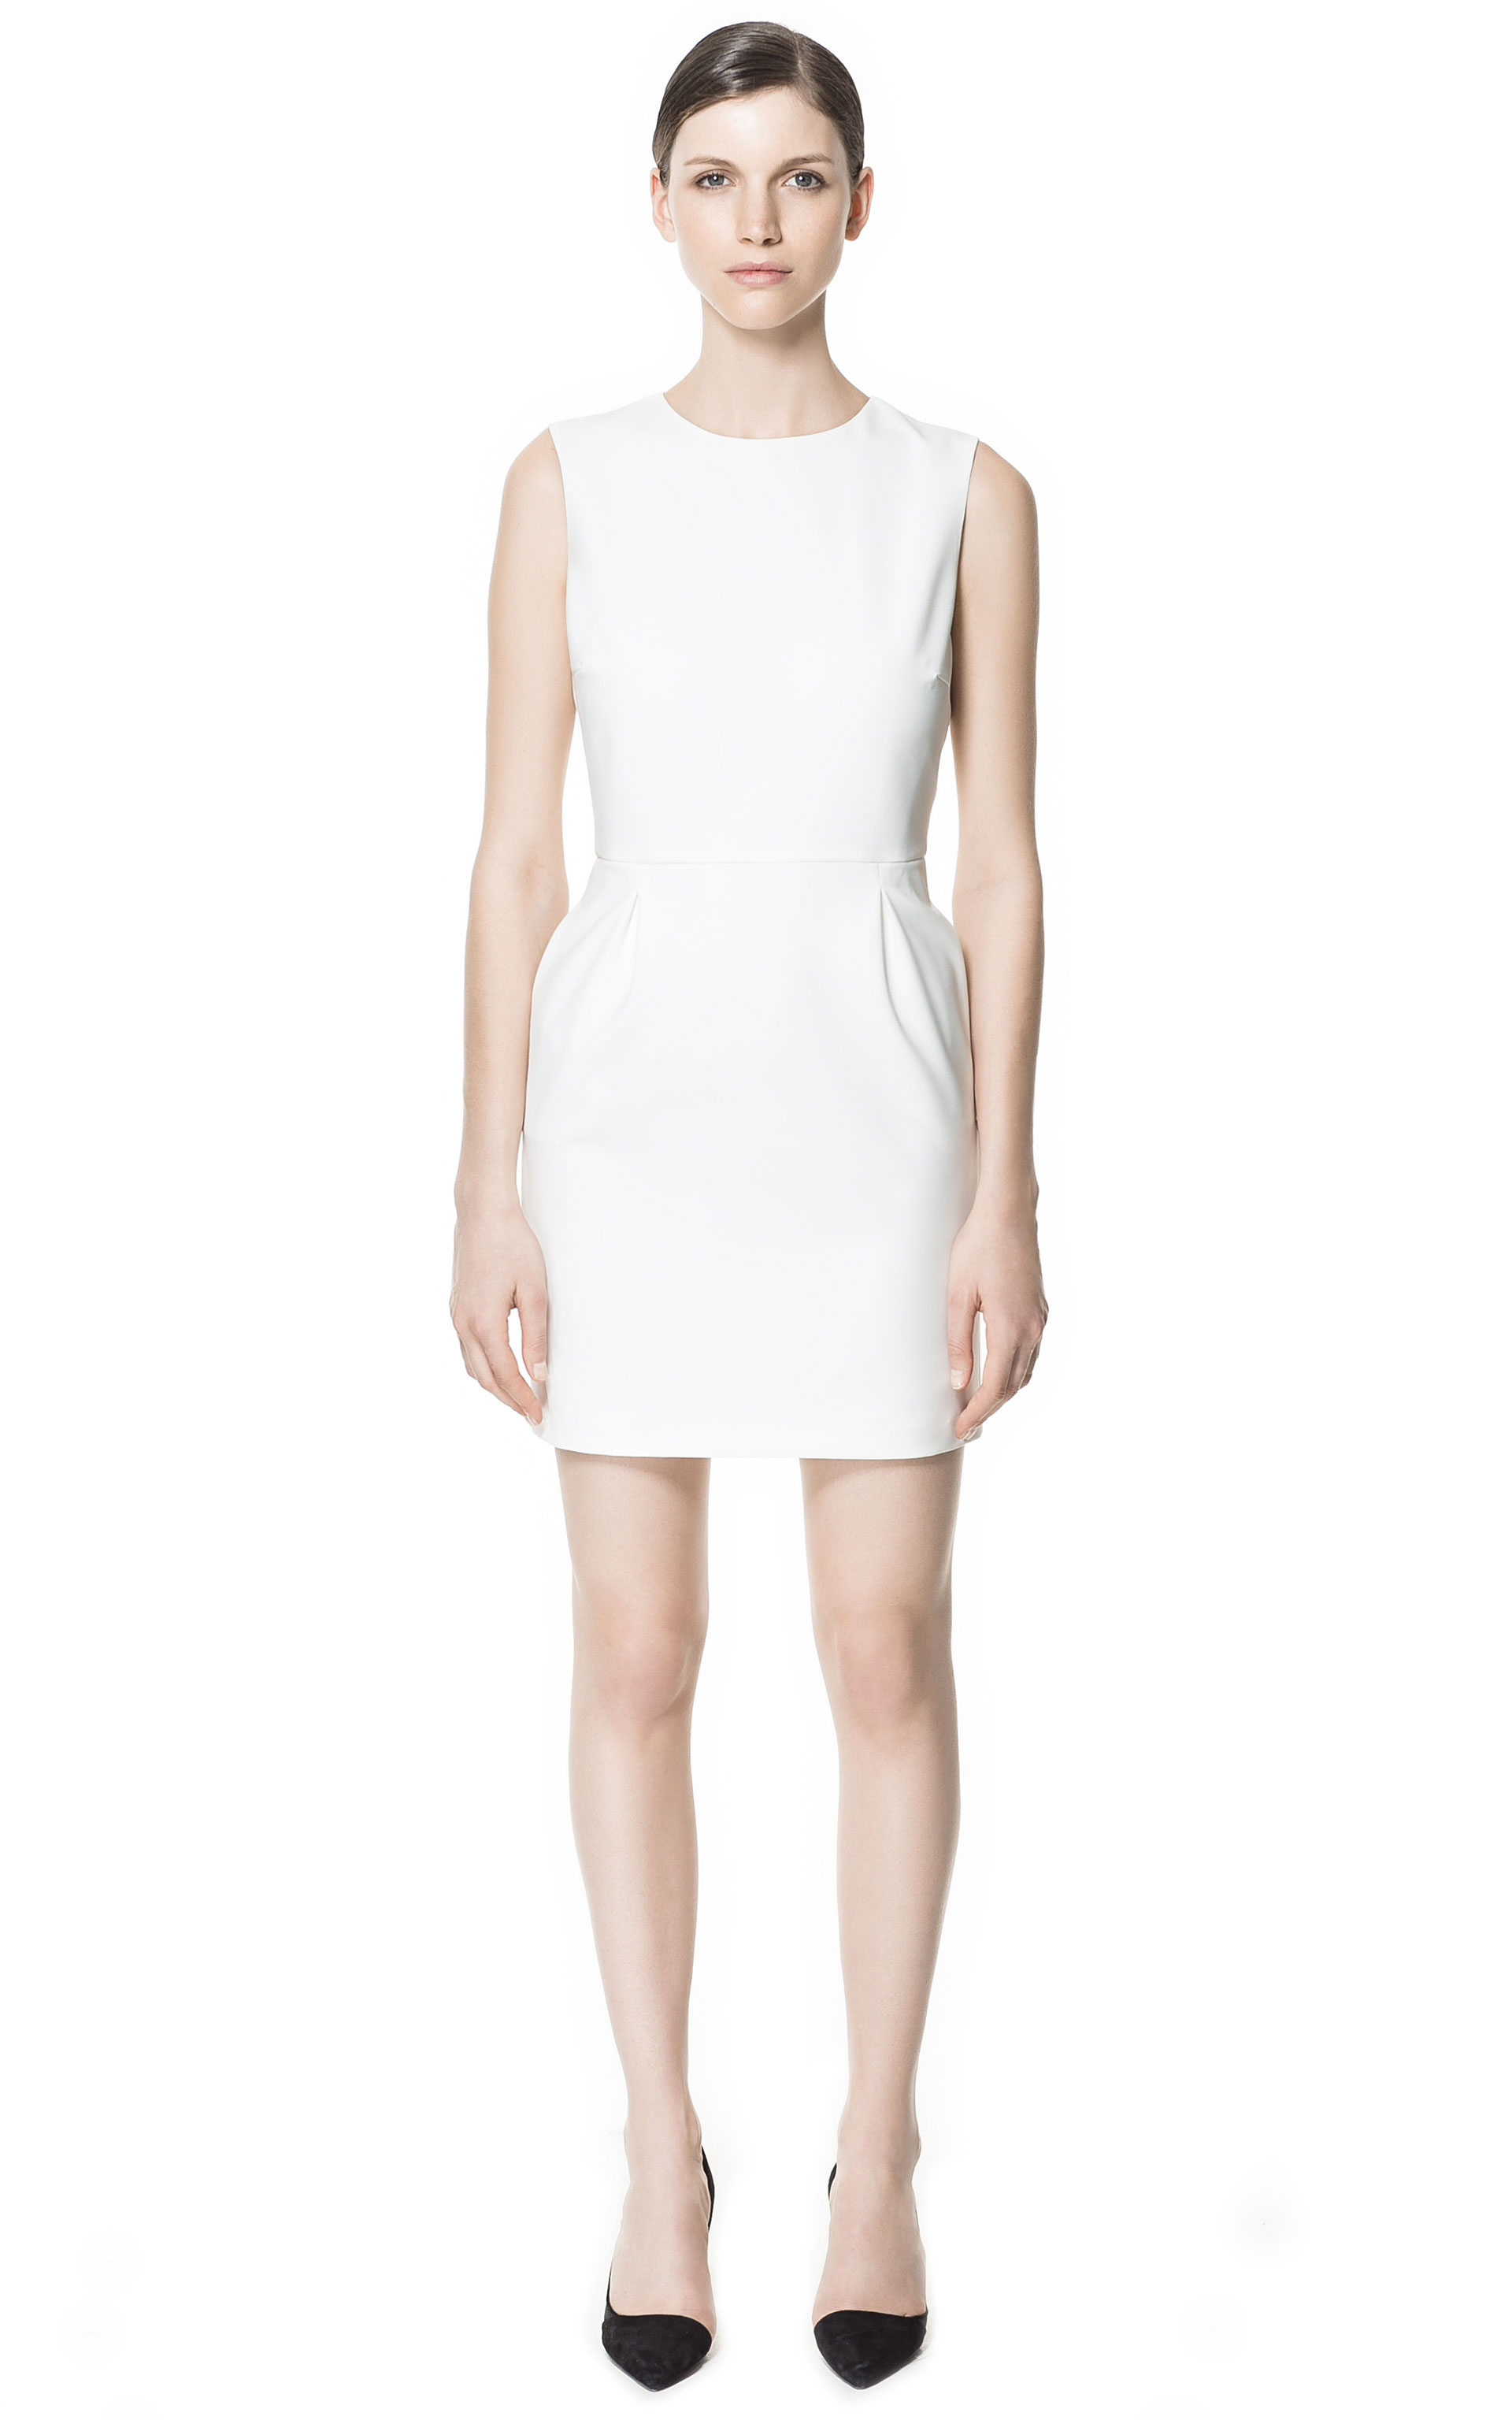 Fantastic ZARA  WOMAN  LONGSLEEVE DRESS  Wanted  Pinterest